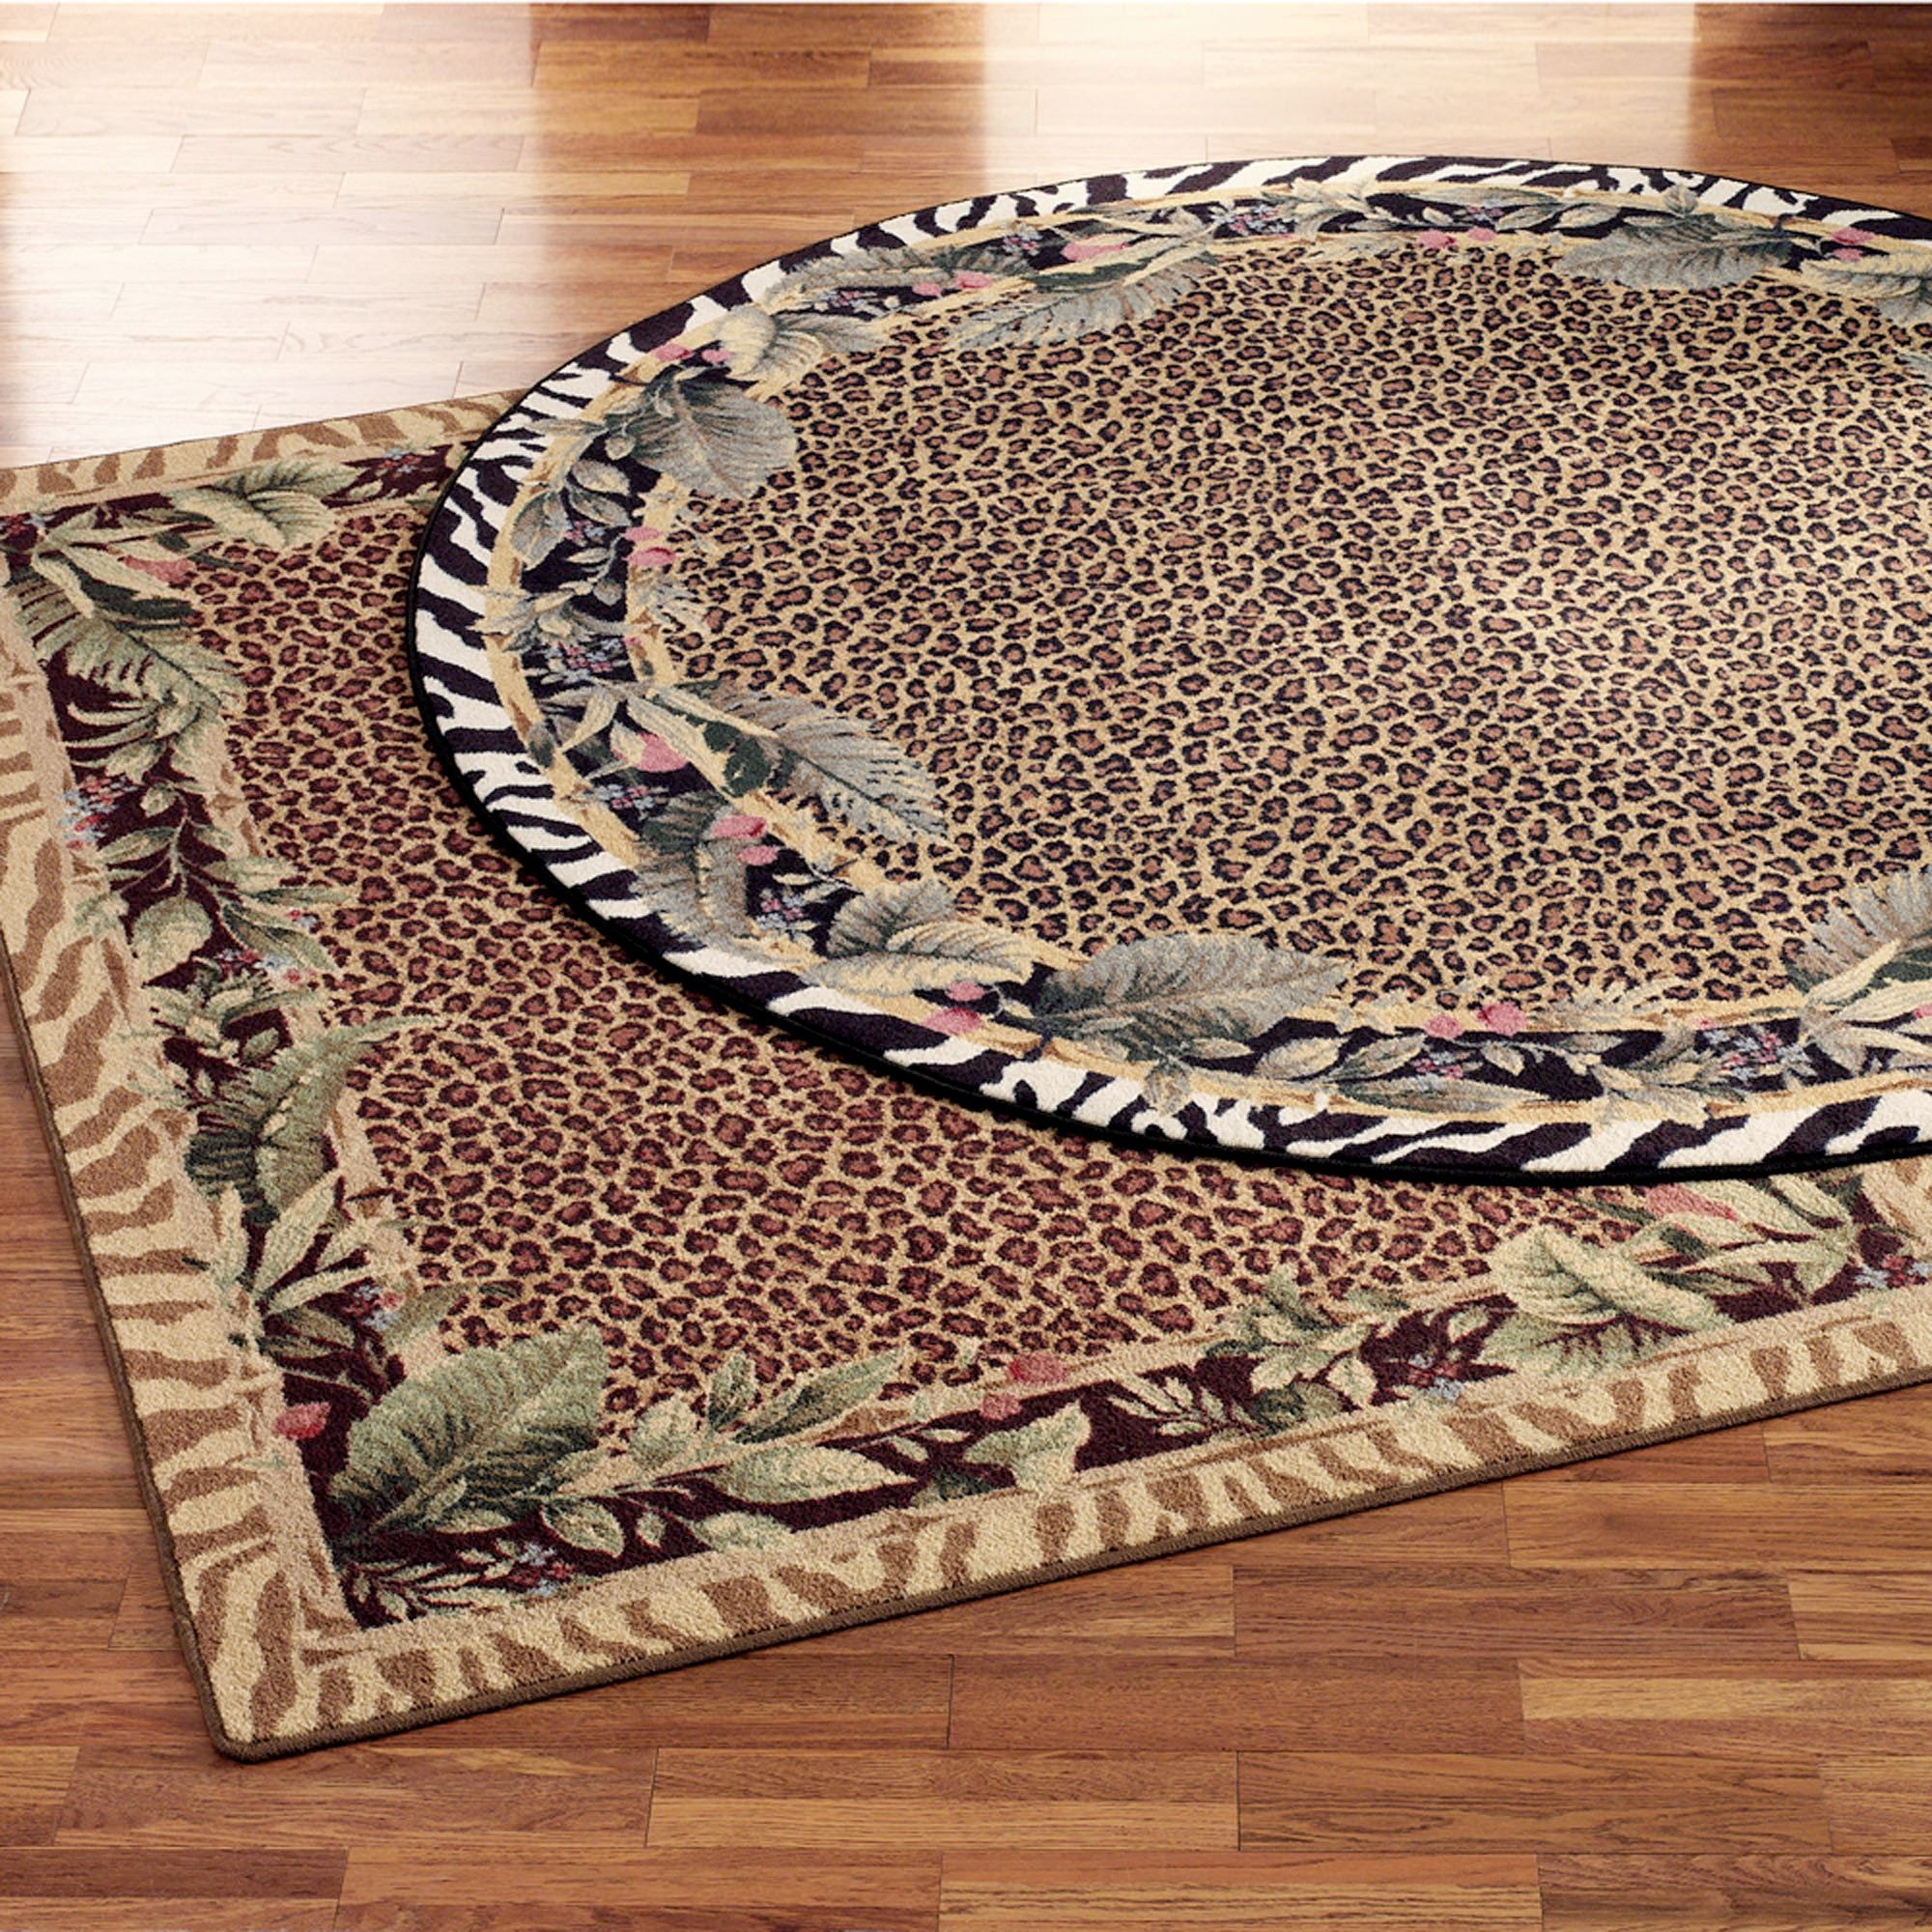 Jungle Safari Animal Print Area Rugs Rugs Safari Home Decor